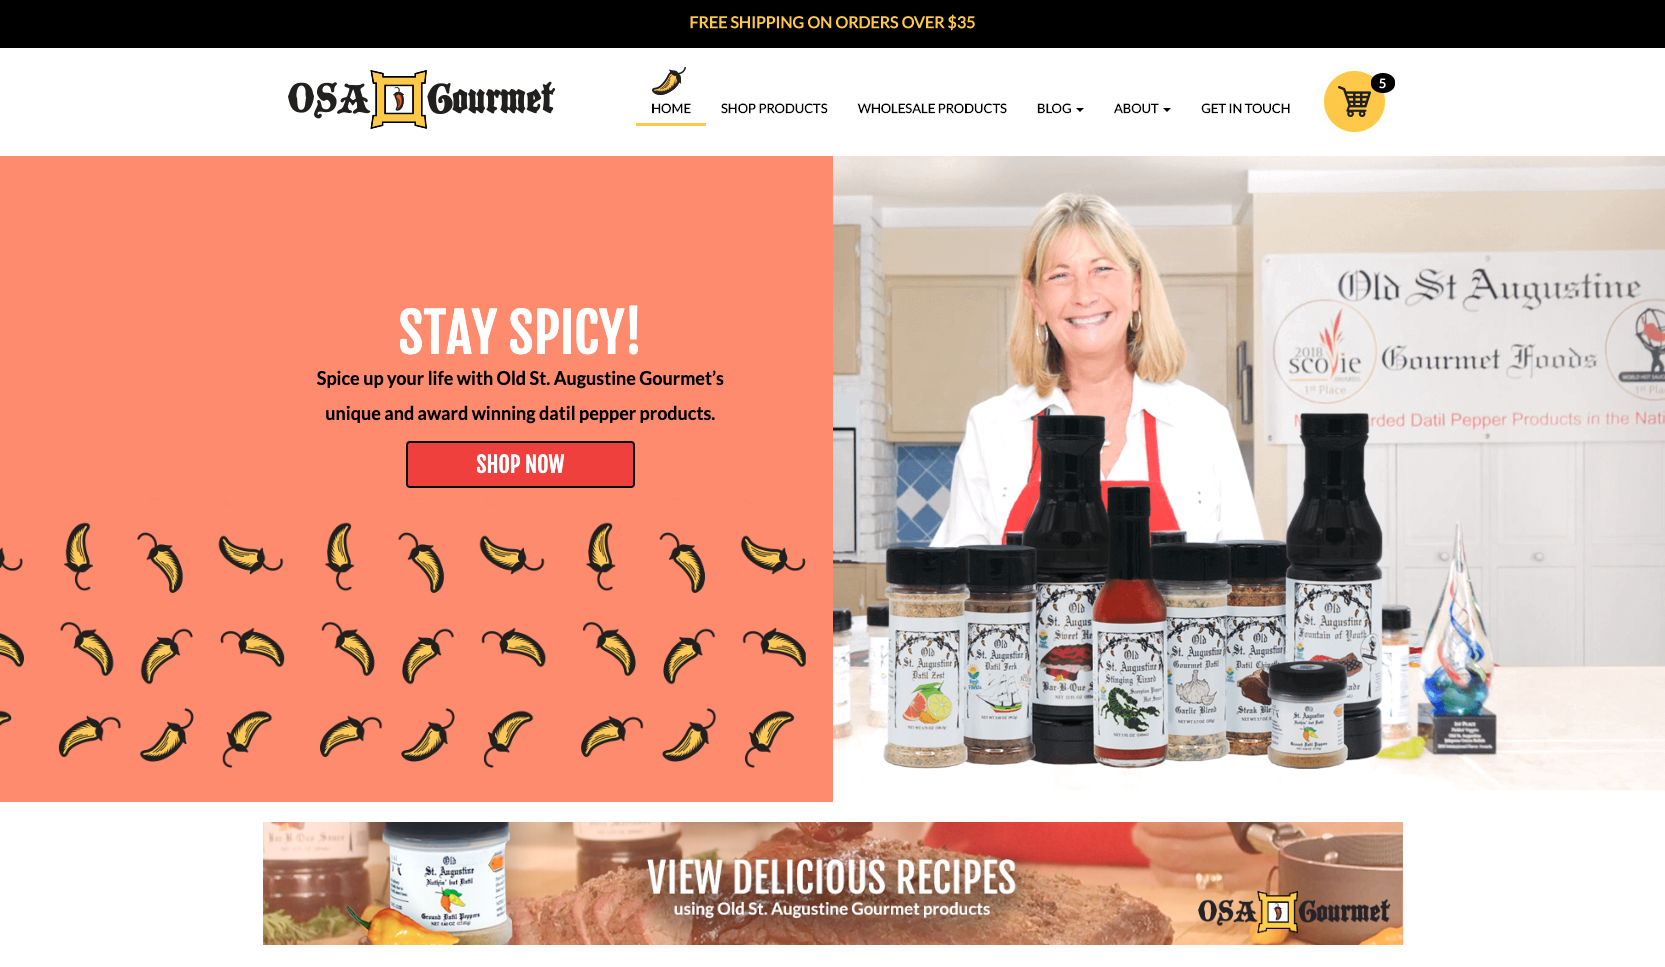 osa gourmet new ecommerce website